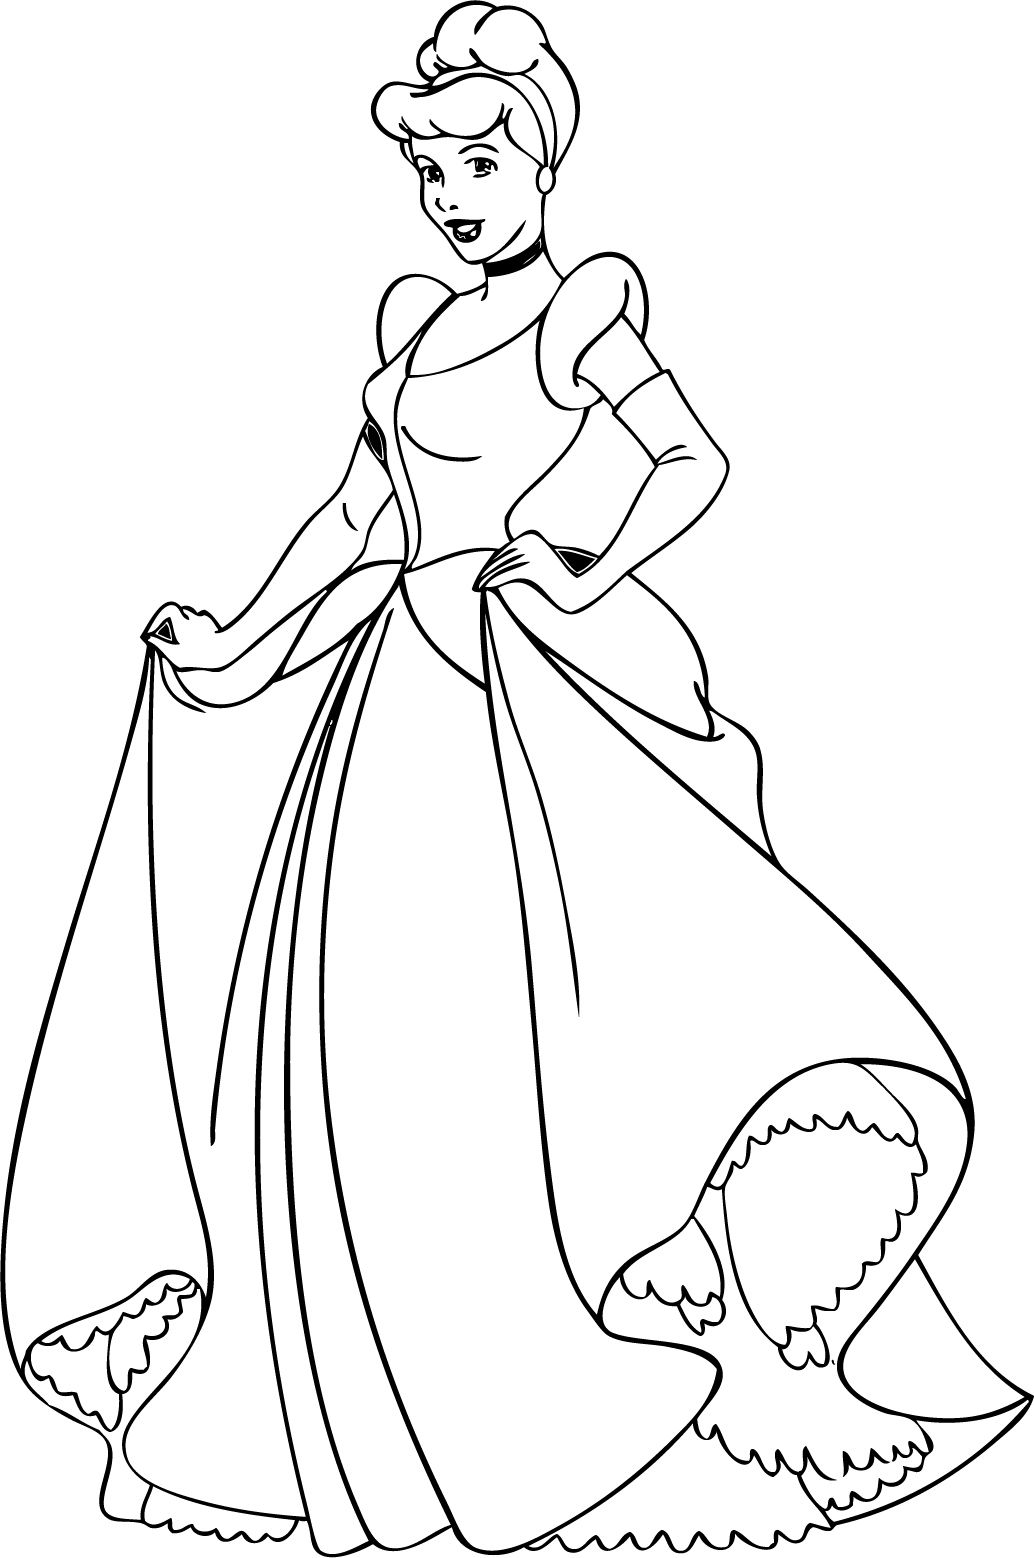 Cinderella Coloring Pages 06 | Disney Coloring Pages and Embroidery ...